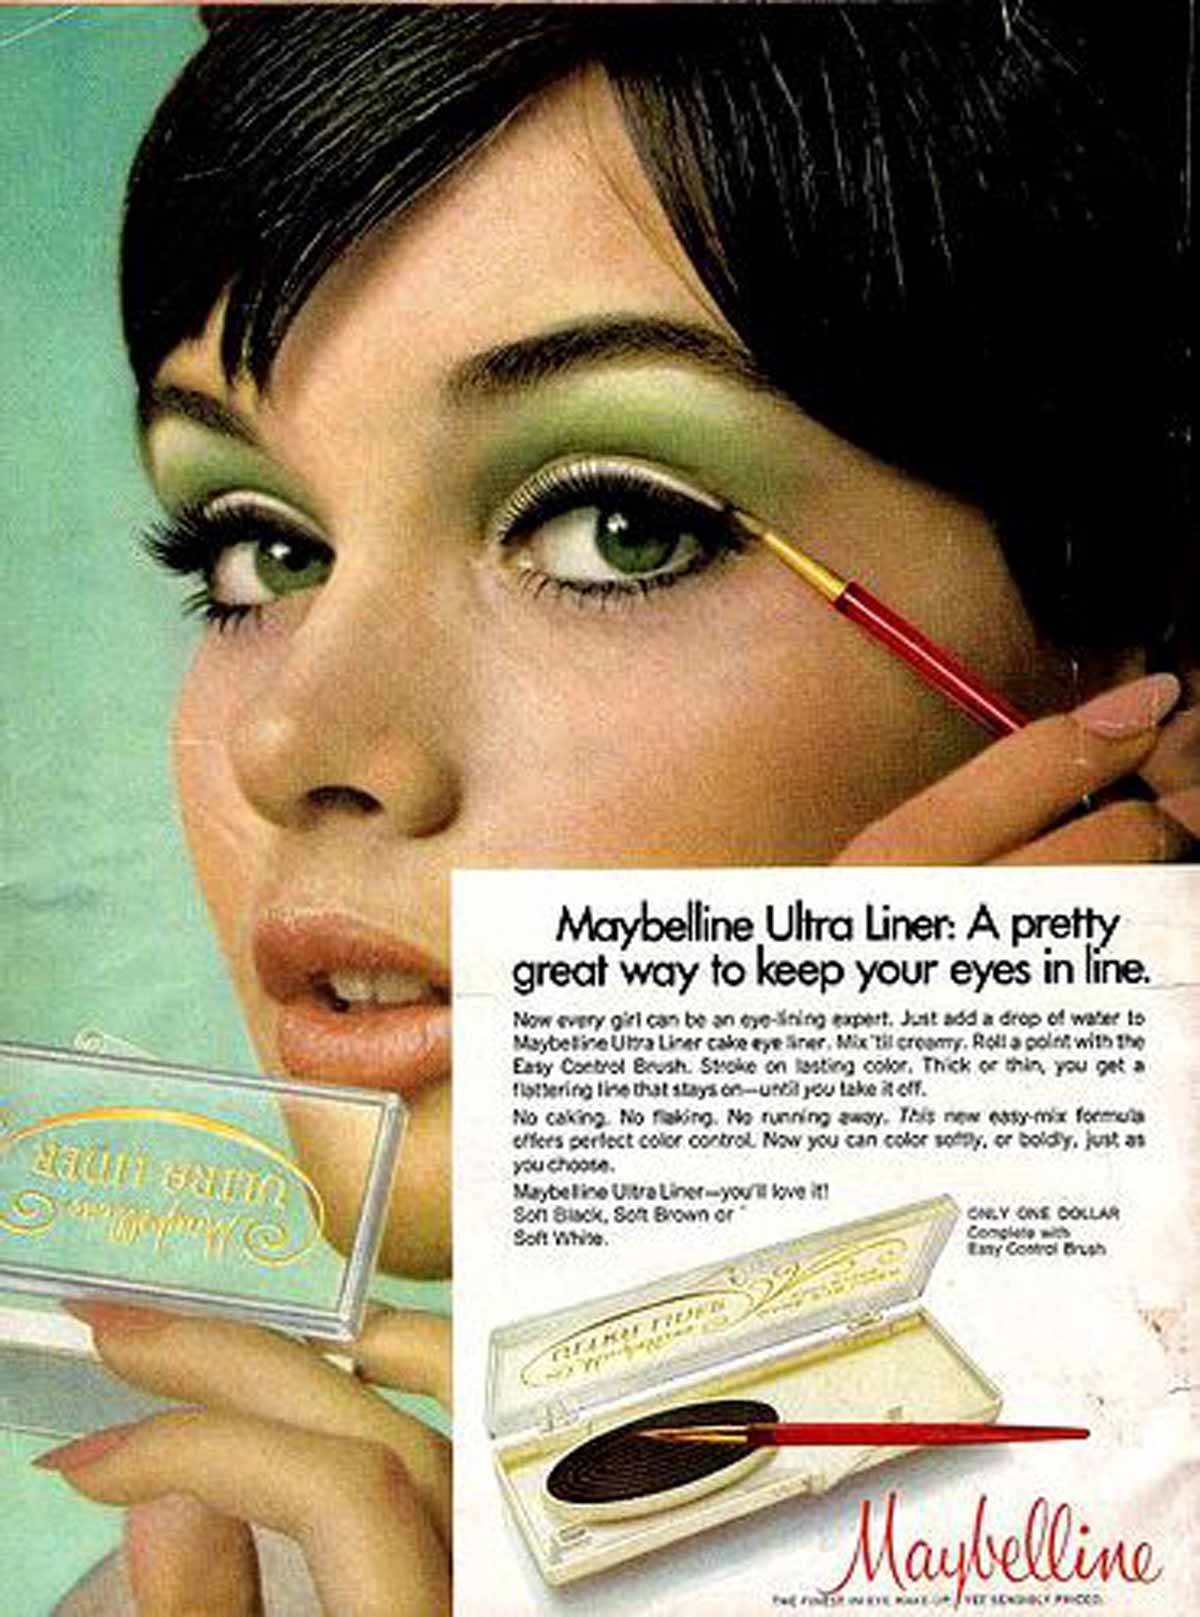 Maybelline Makeup Tutorial Malaysia: The 1970s Makeup Look – 5 Key Points